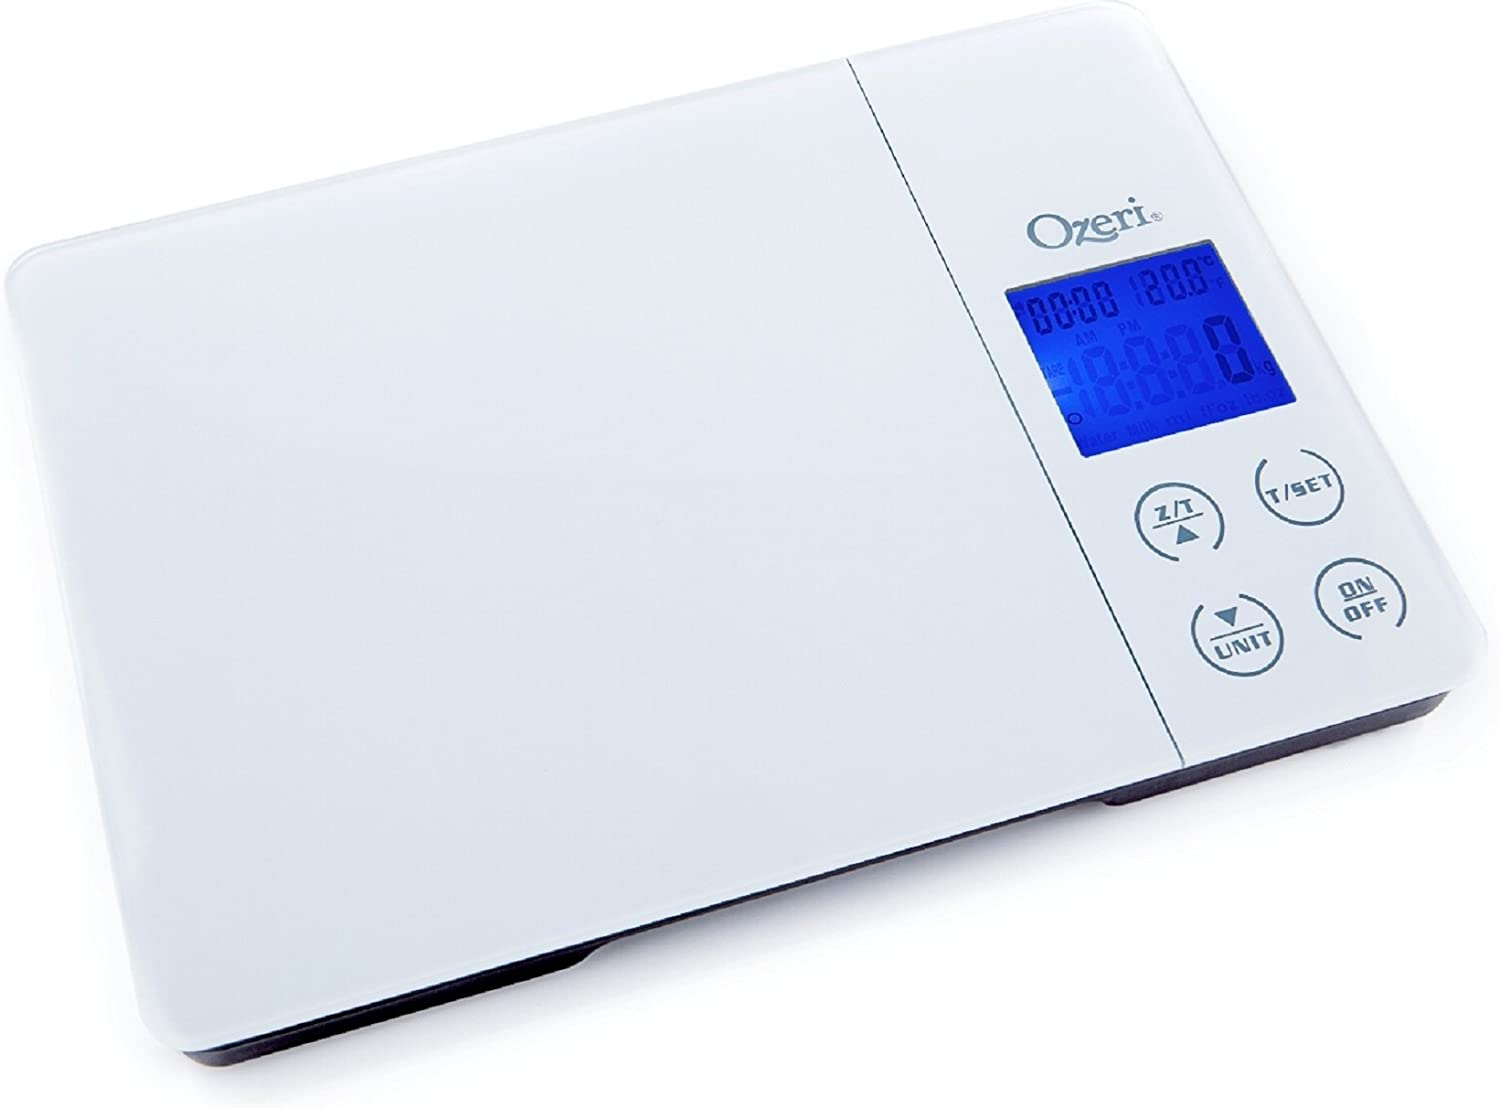 Ozeri Gourmet Digital Kitchen Scale in Tempered Glass - with Timer, Alarm and Temperature Display